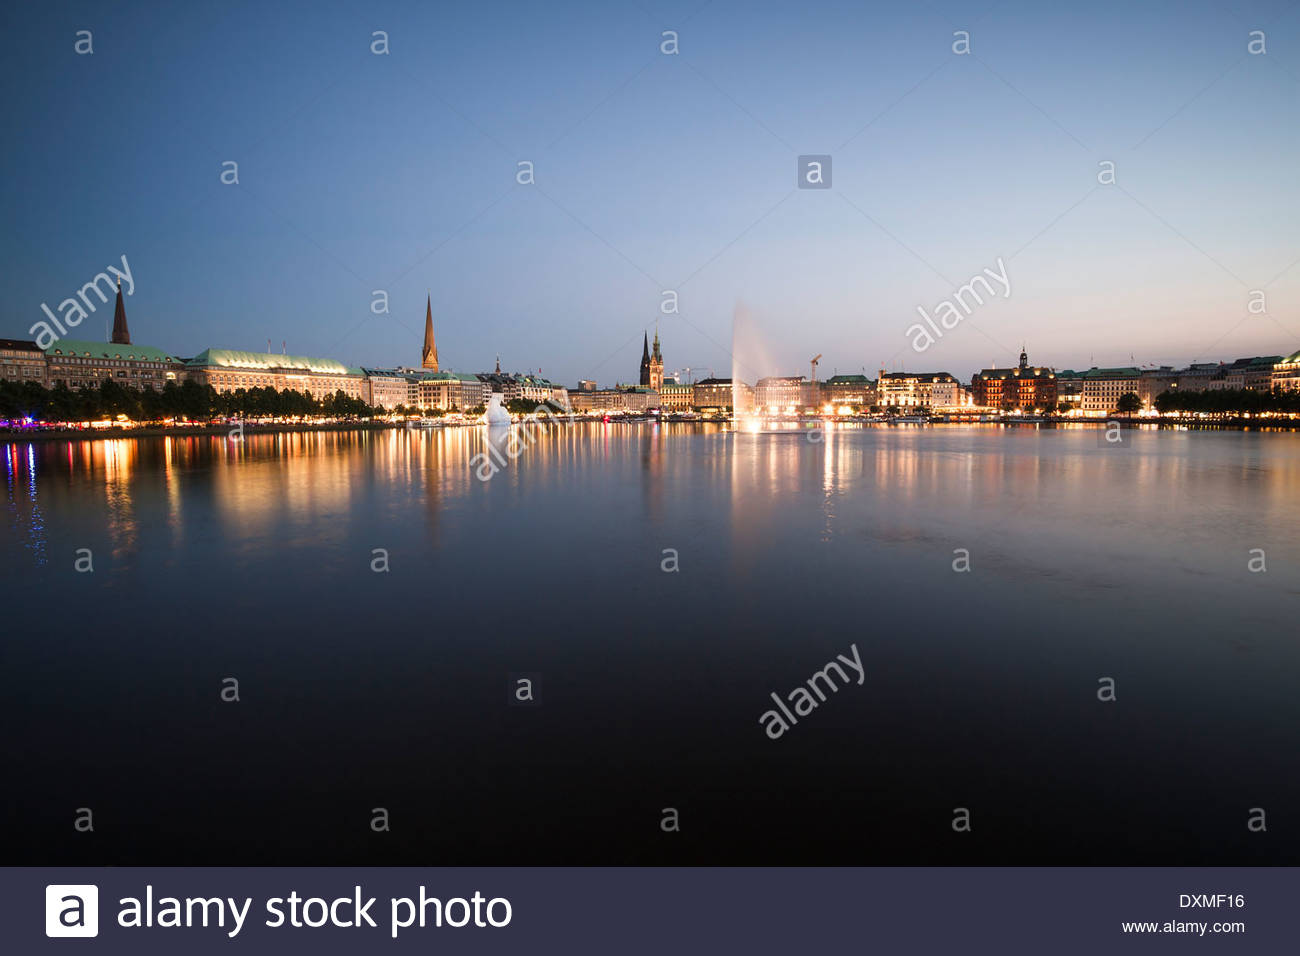 Germany, Hamburg, Binnenalster with skyline at blue hour - Stock Image